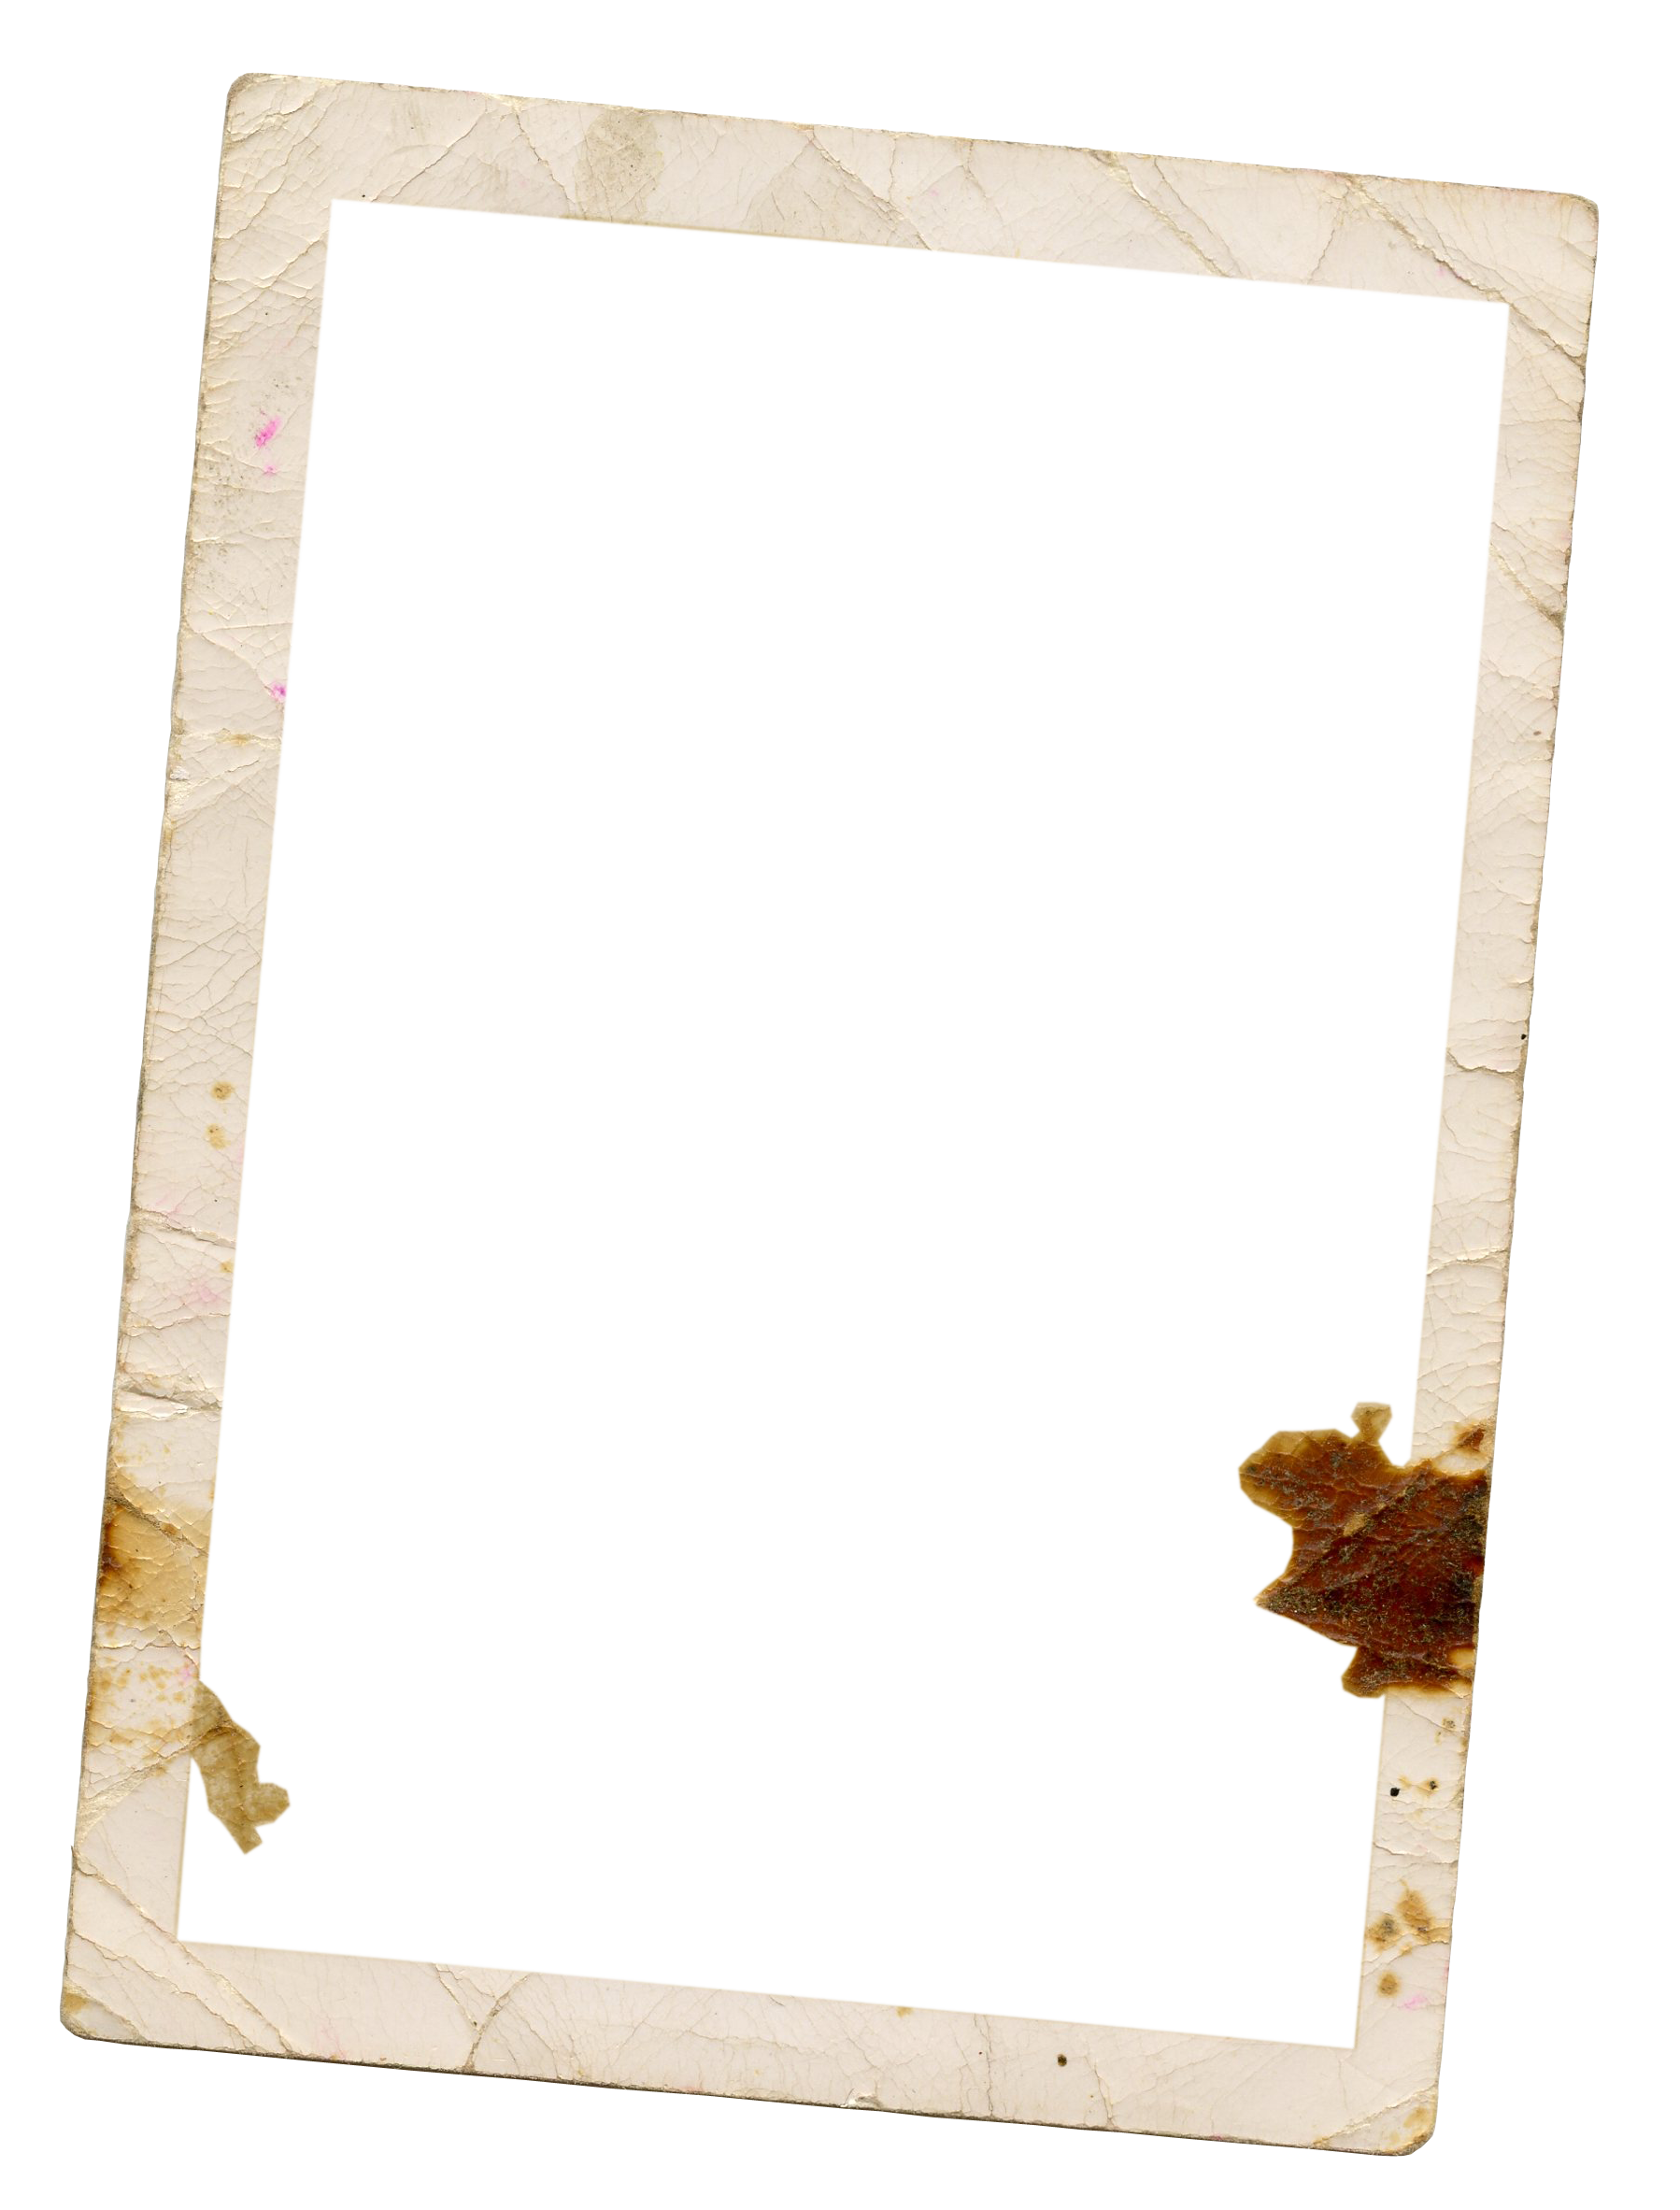 Old photo frame png. Vintagephotoframe tabl pinterest retro